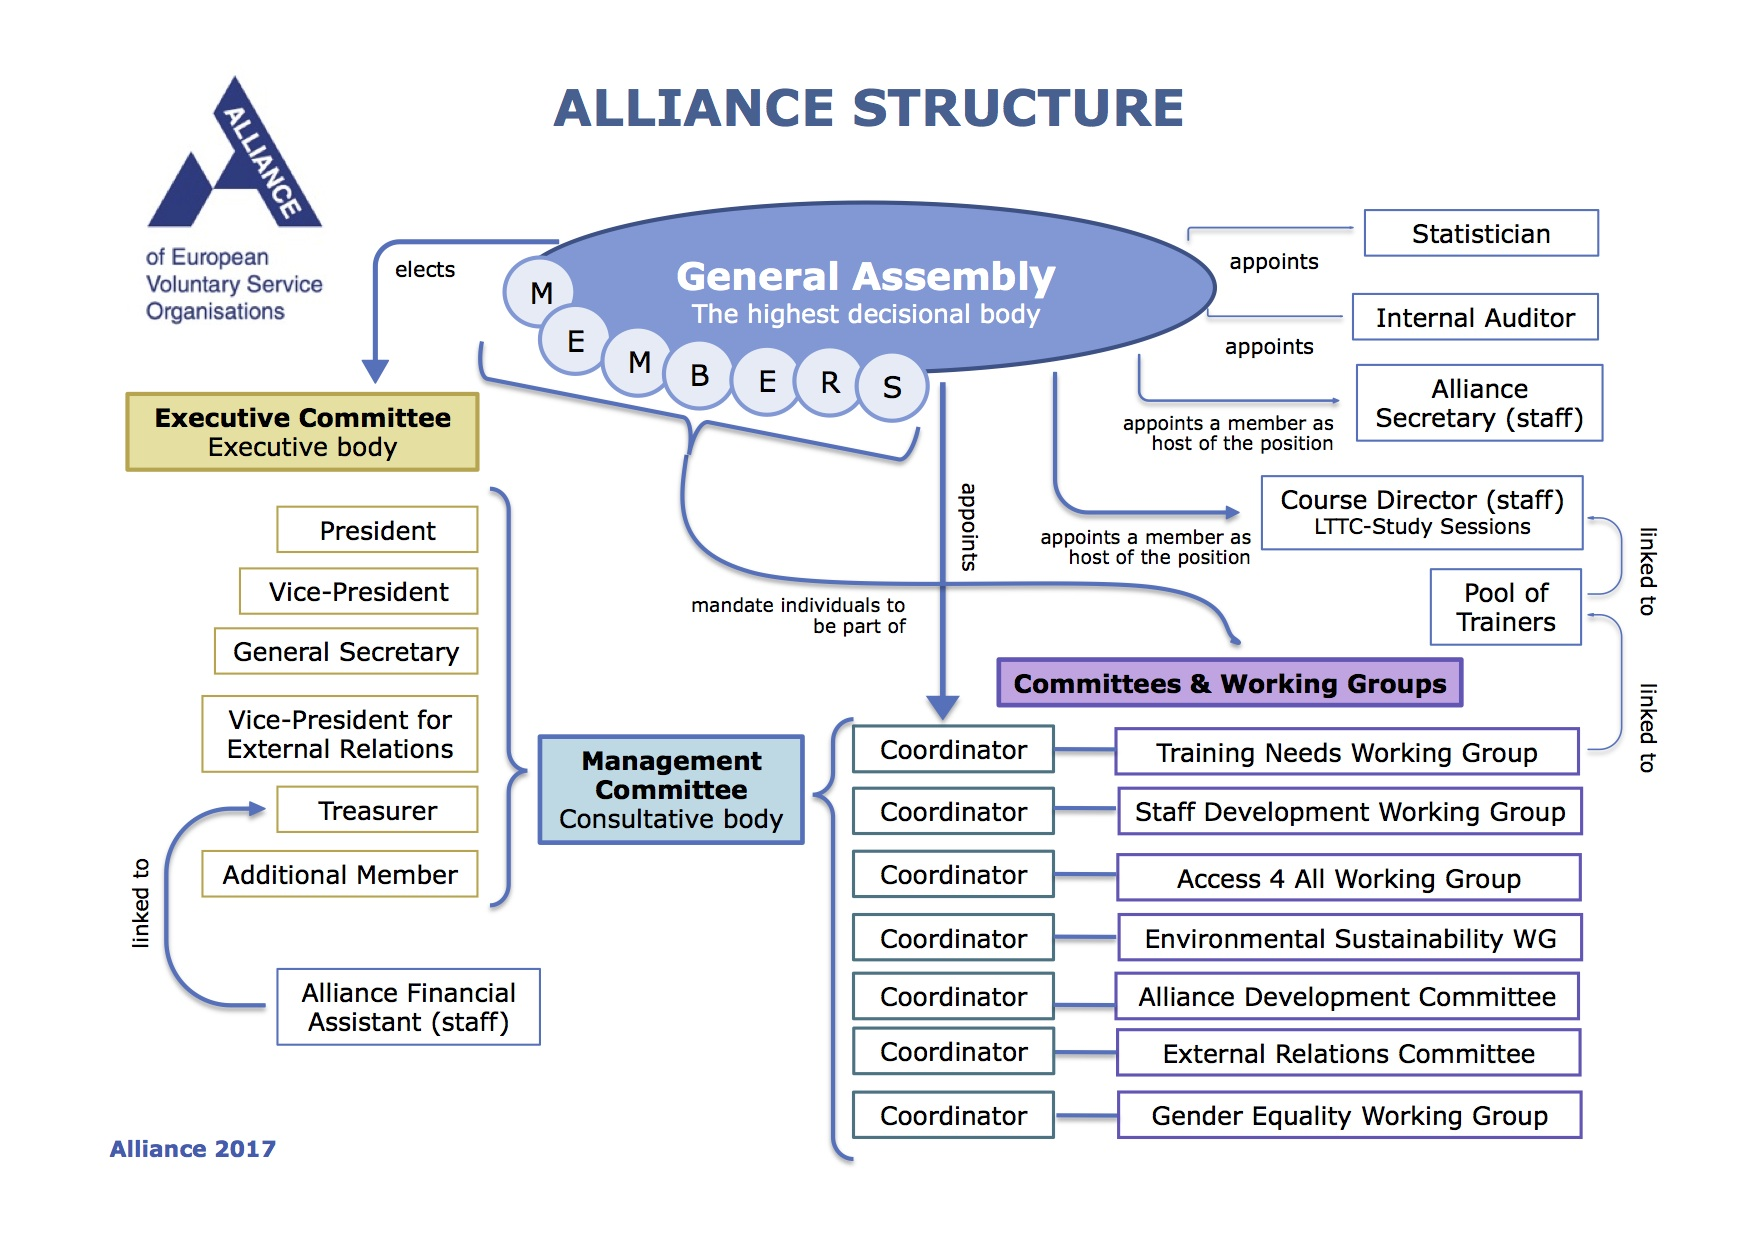 Alliance structure in 2017